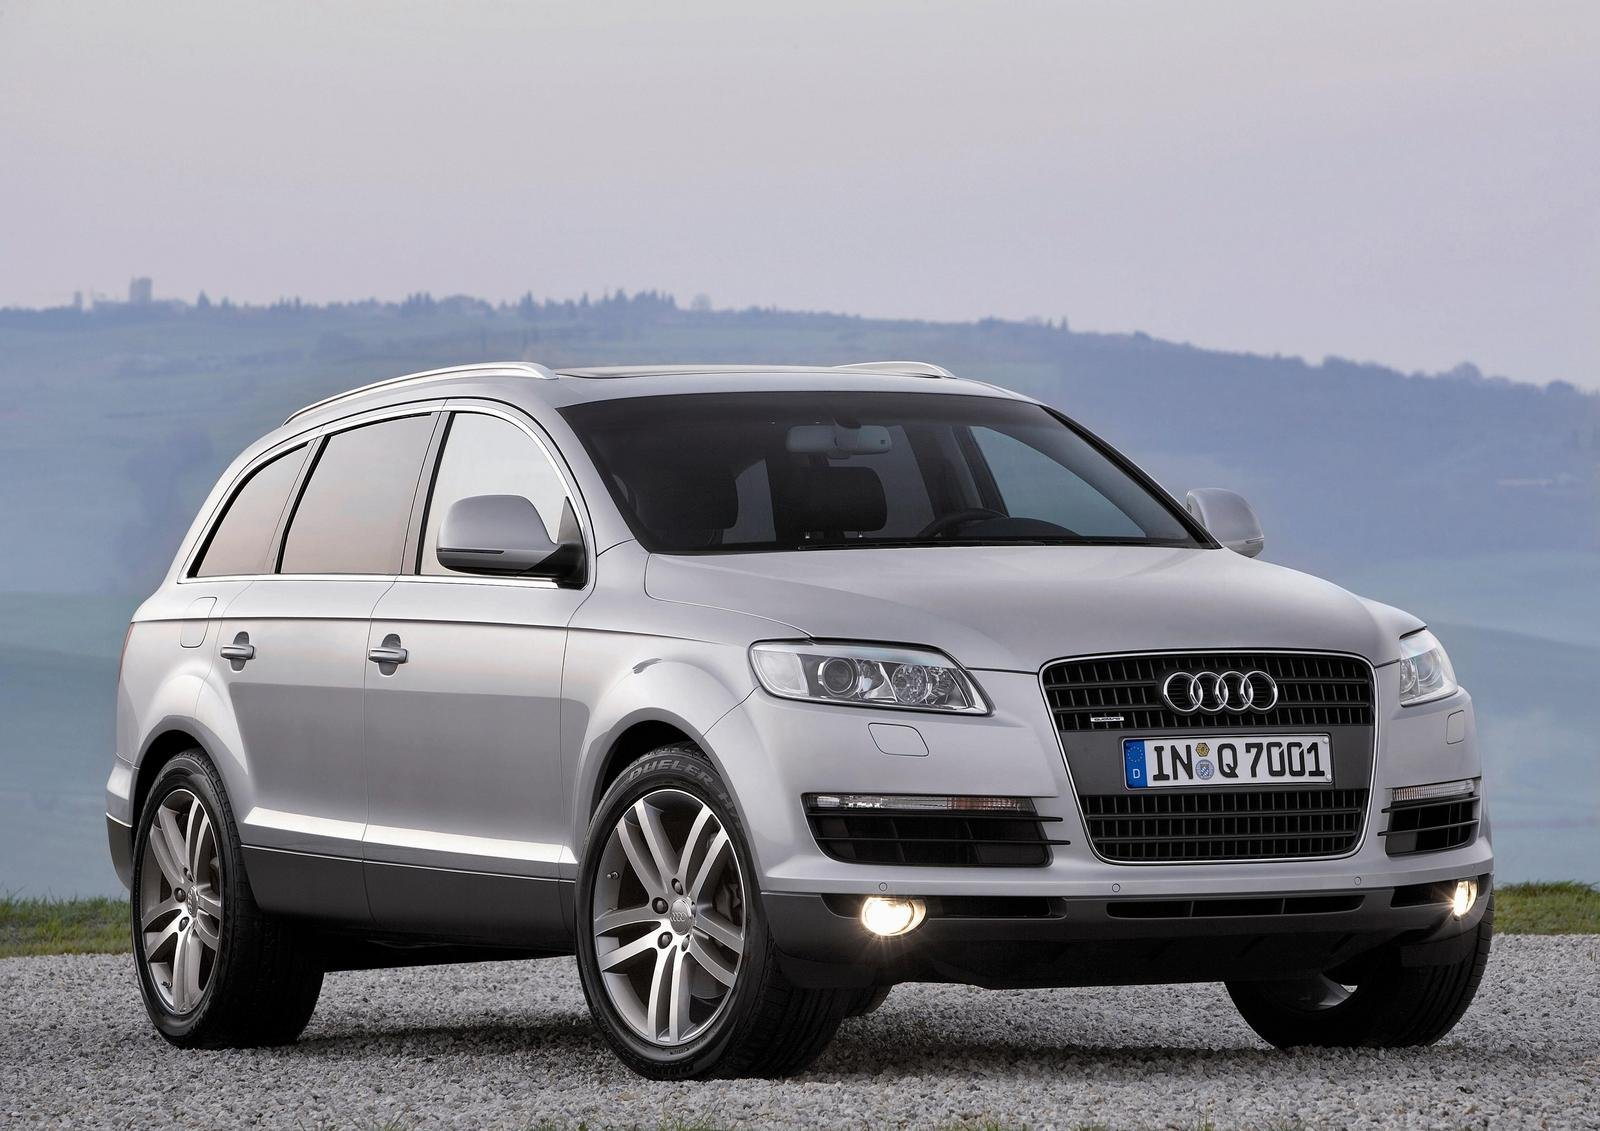 2007 audi q7 4 2 tdi picture 166665 car review top speed. Black Bedroom Furniture Sets. Home Design Ideas